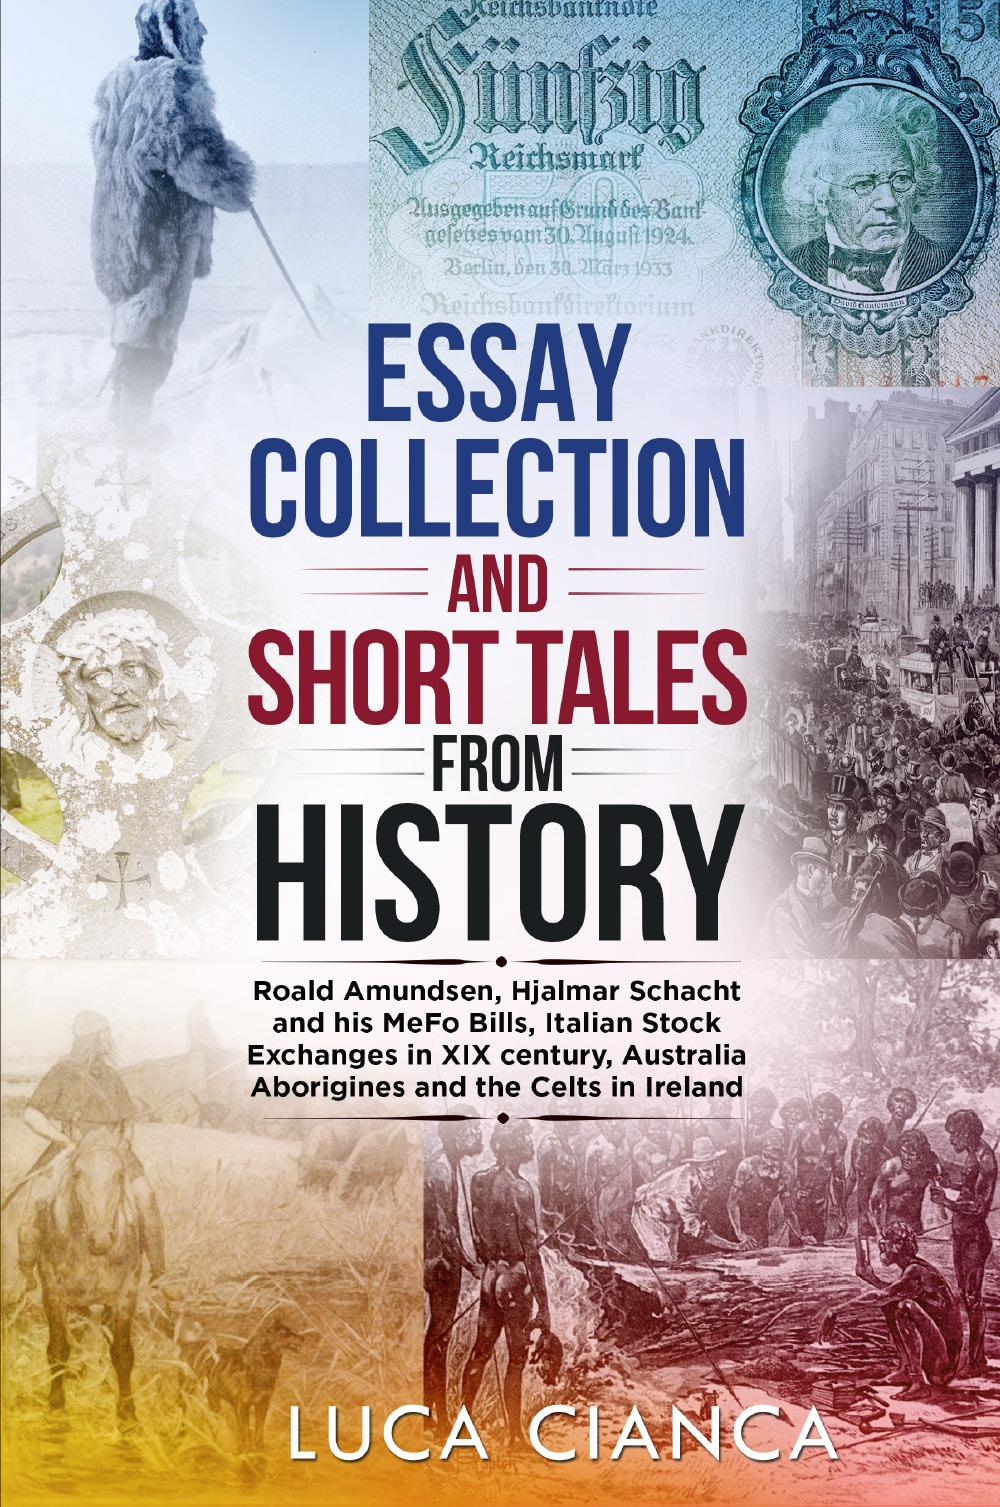 ESSAY COLLECTION AND SHORT TALES FROM HISTORY